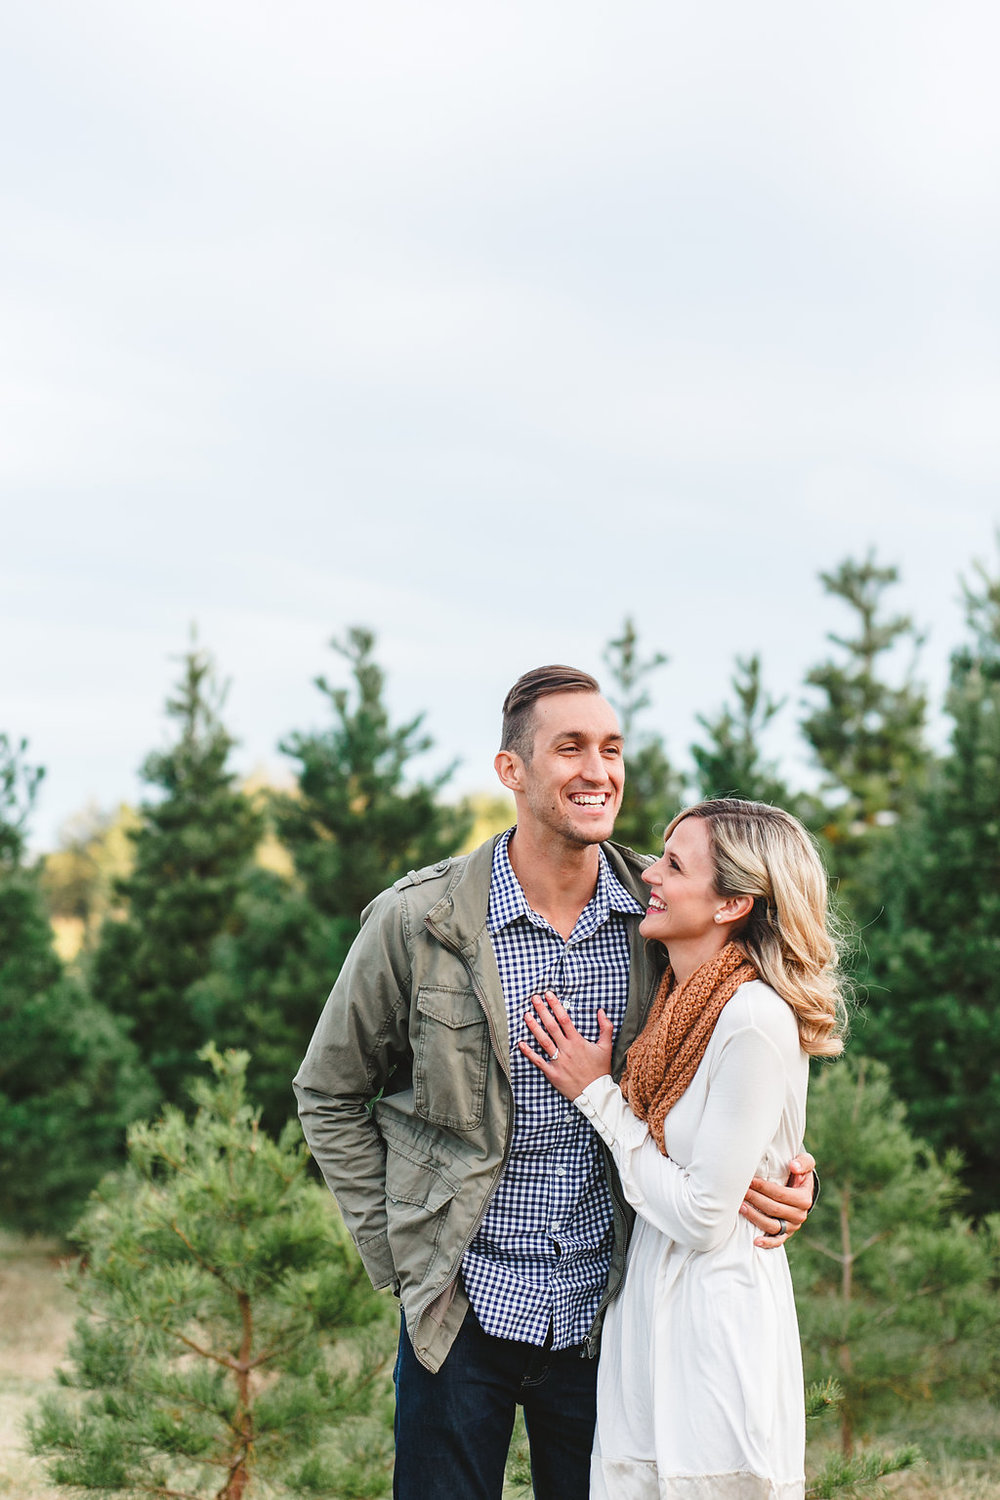 Christmas Proposal | Lindsey Shea Photography | GRO Designs | Victoria Rellas | Sweet Pea Events | Natalie Grace Calligraphy Co.